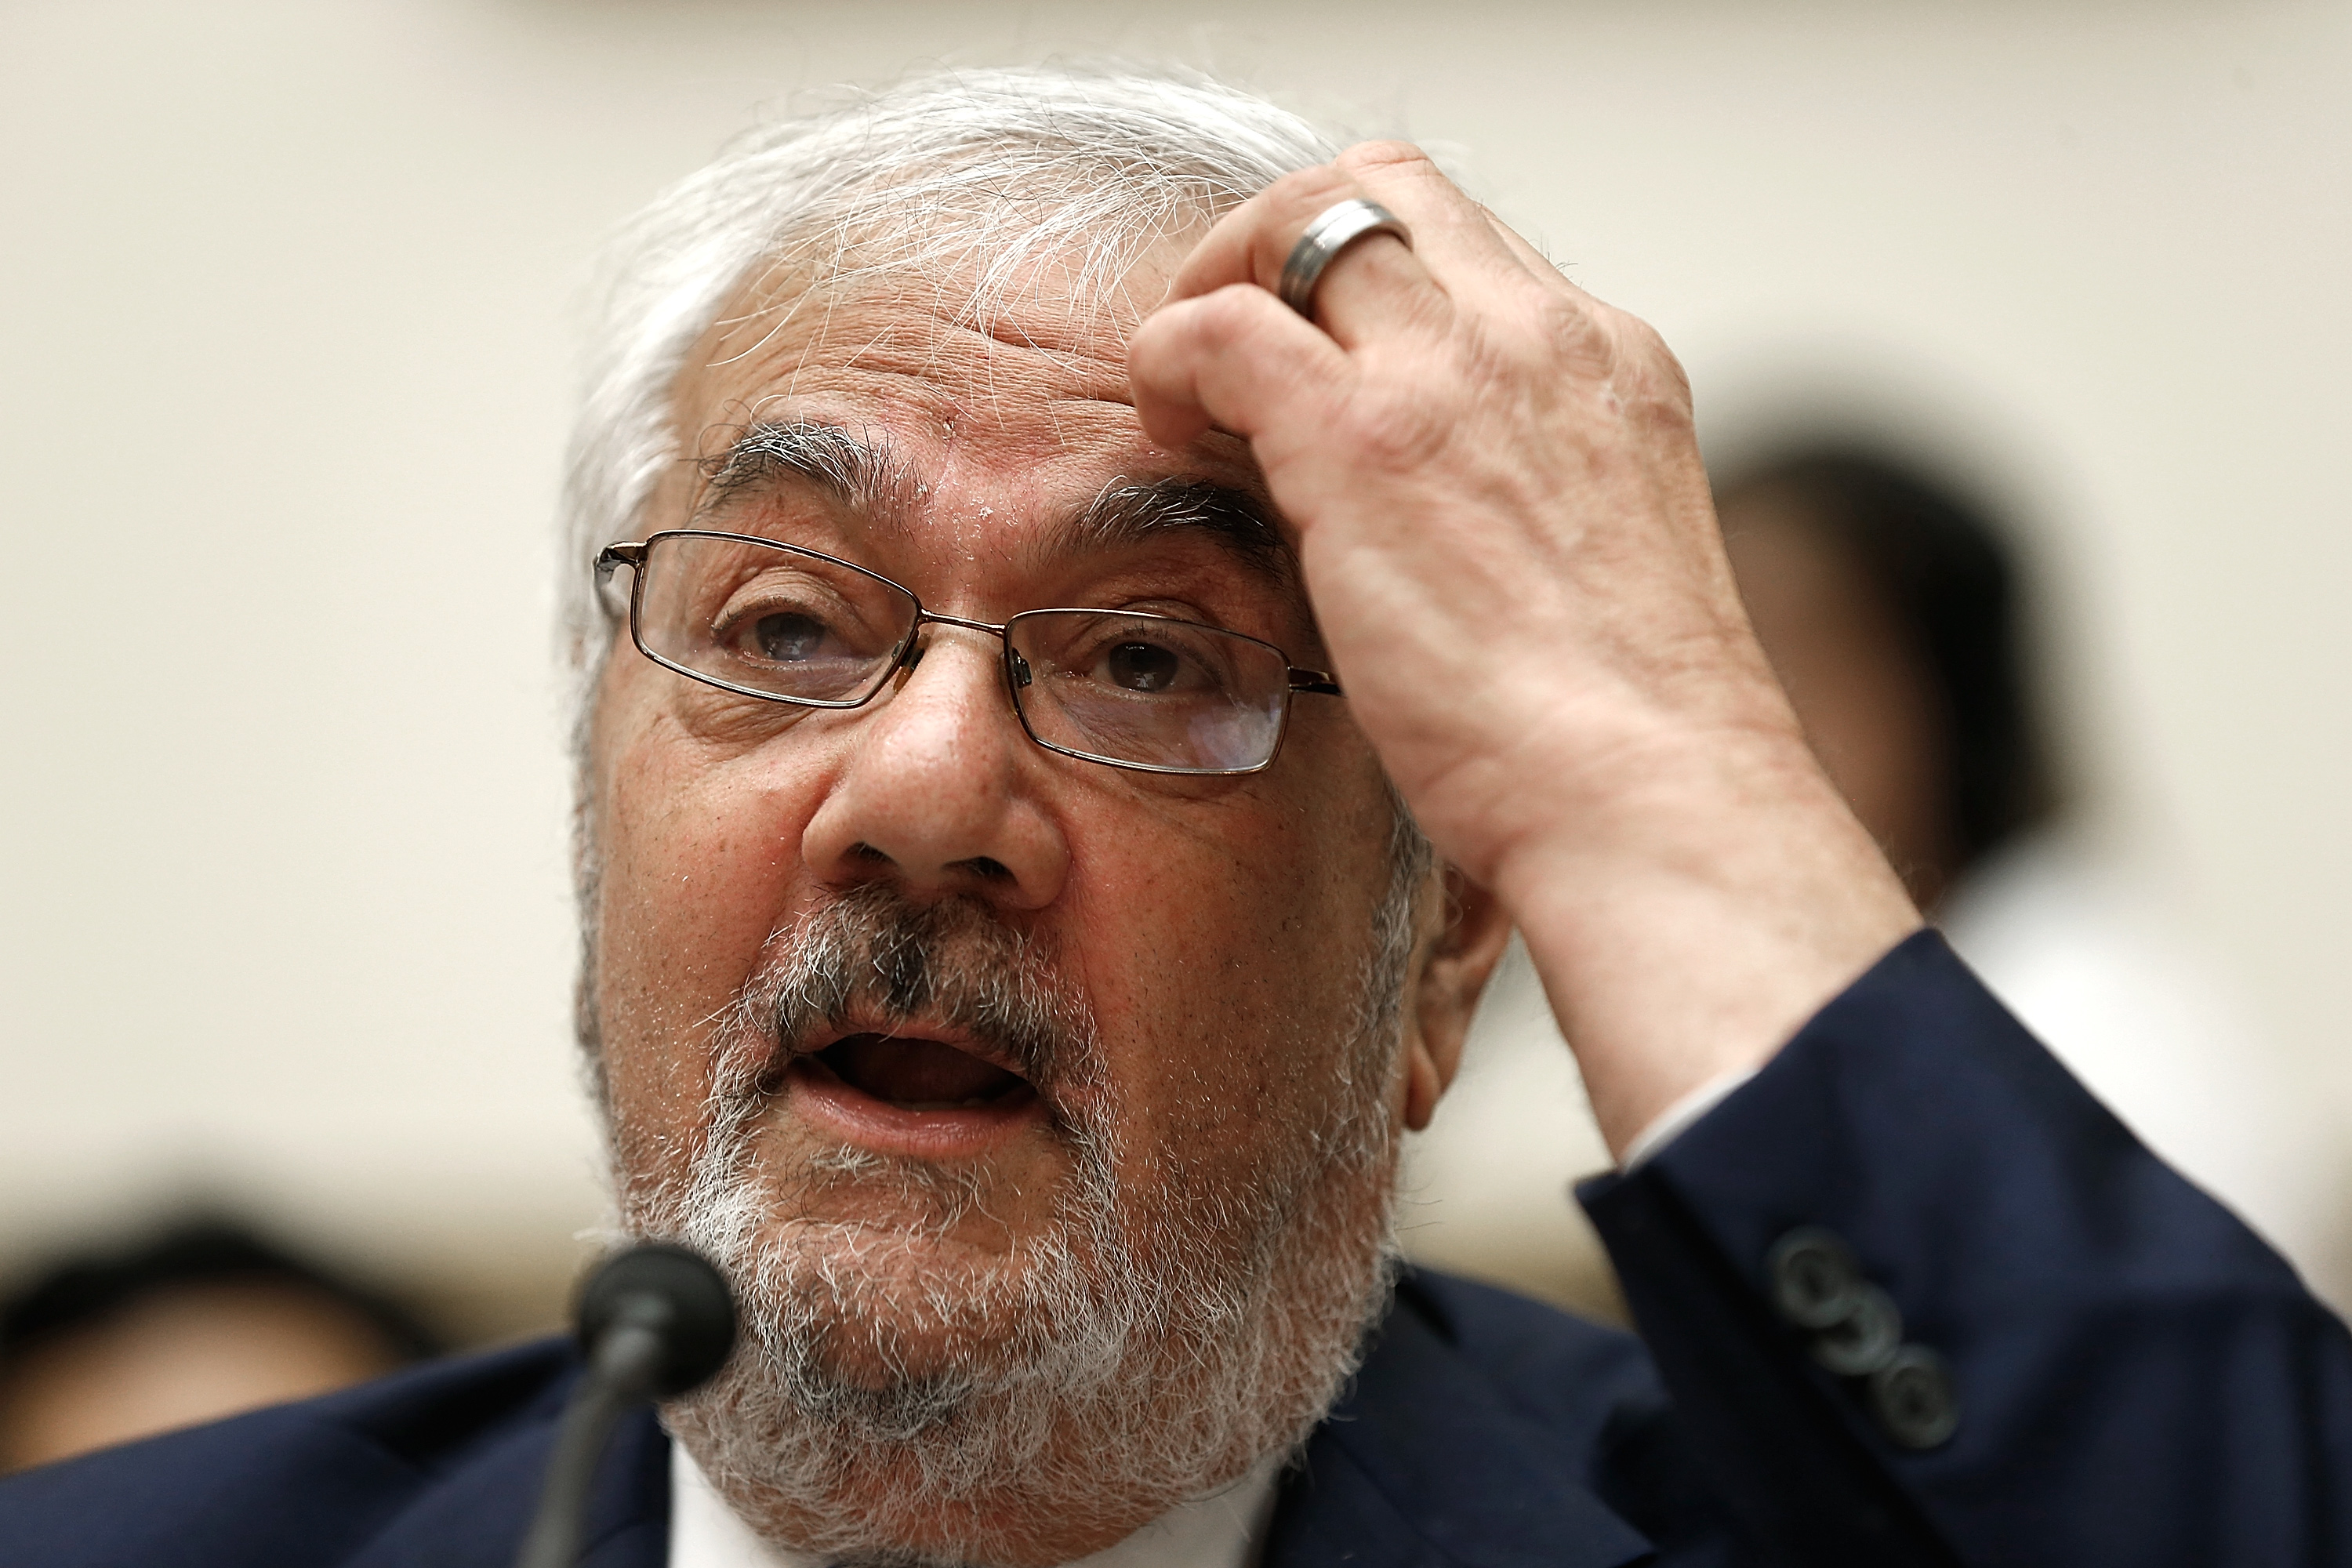 Former House Financial Services Committee chairman Barney Frank (D-MA) testifies before the House Financial Services Committee July 23, 2014 on Capitol Hill in Washington, DC.